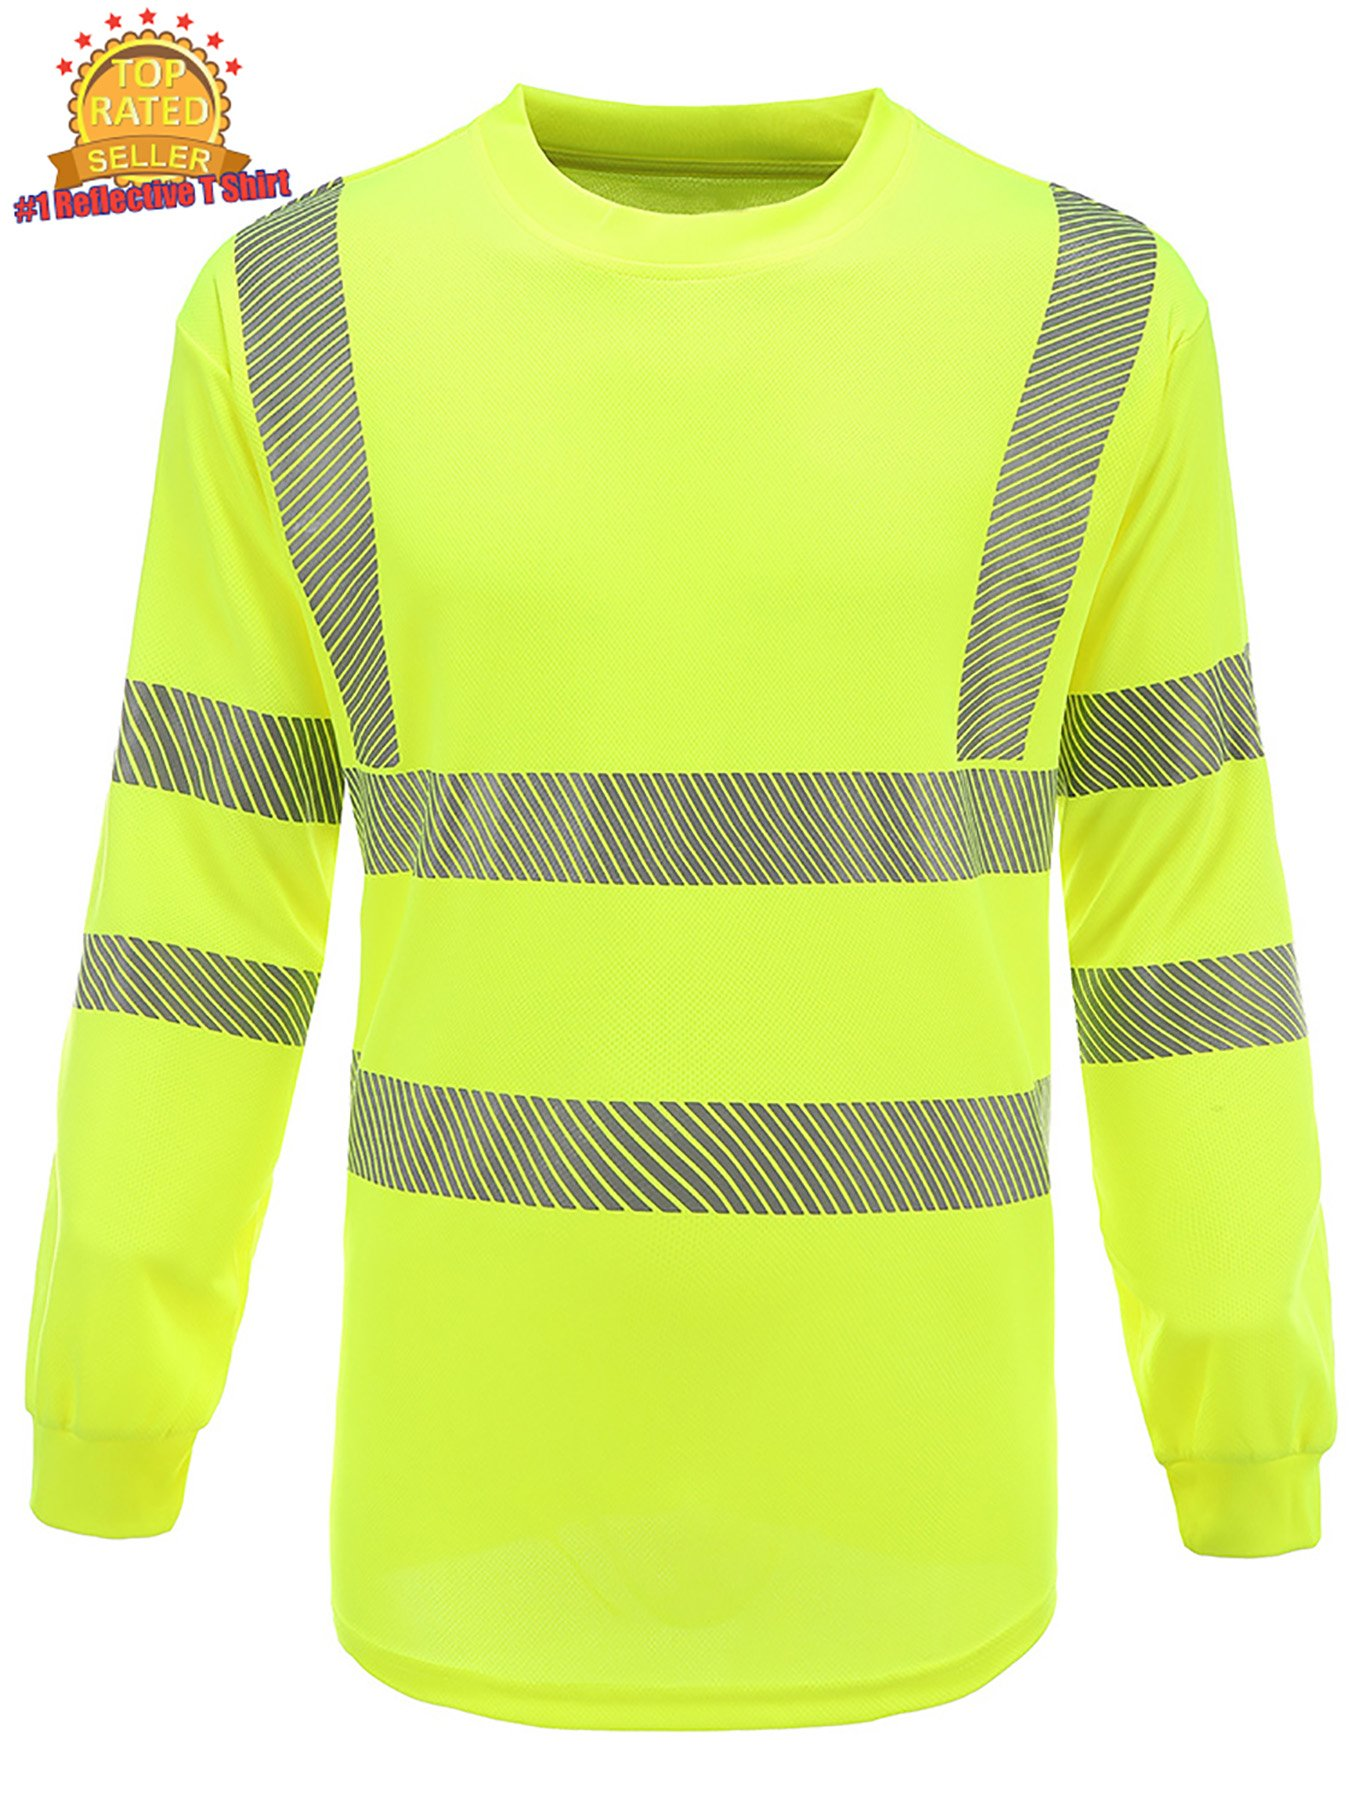 360 USA ANSI ISEA Class 2 Mesh Dry Fit Safety reflective long sleeve T-shirt by 360 USA